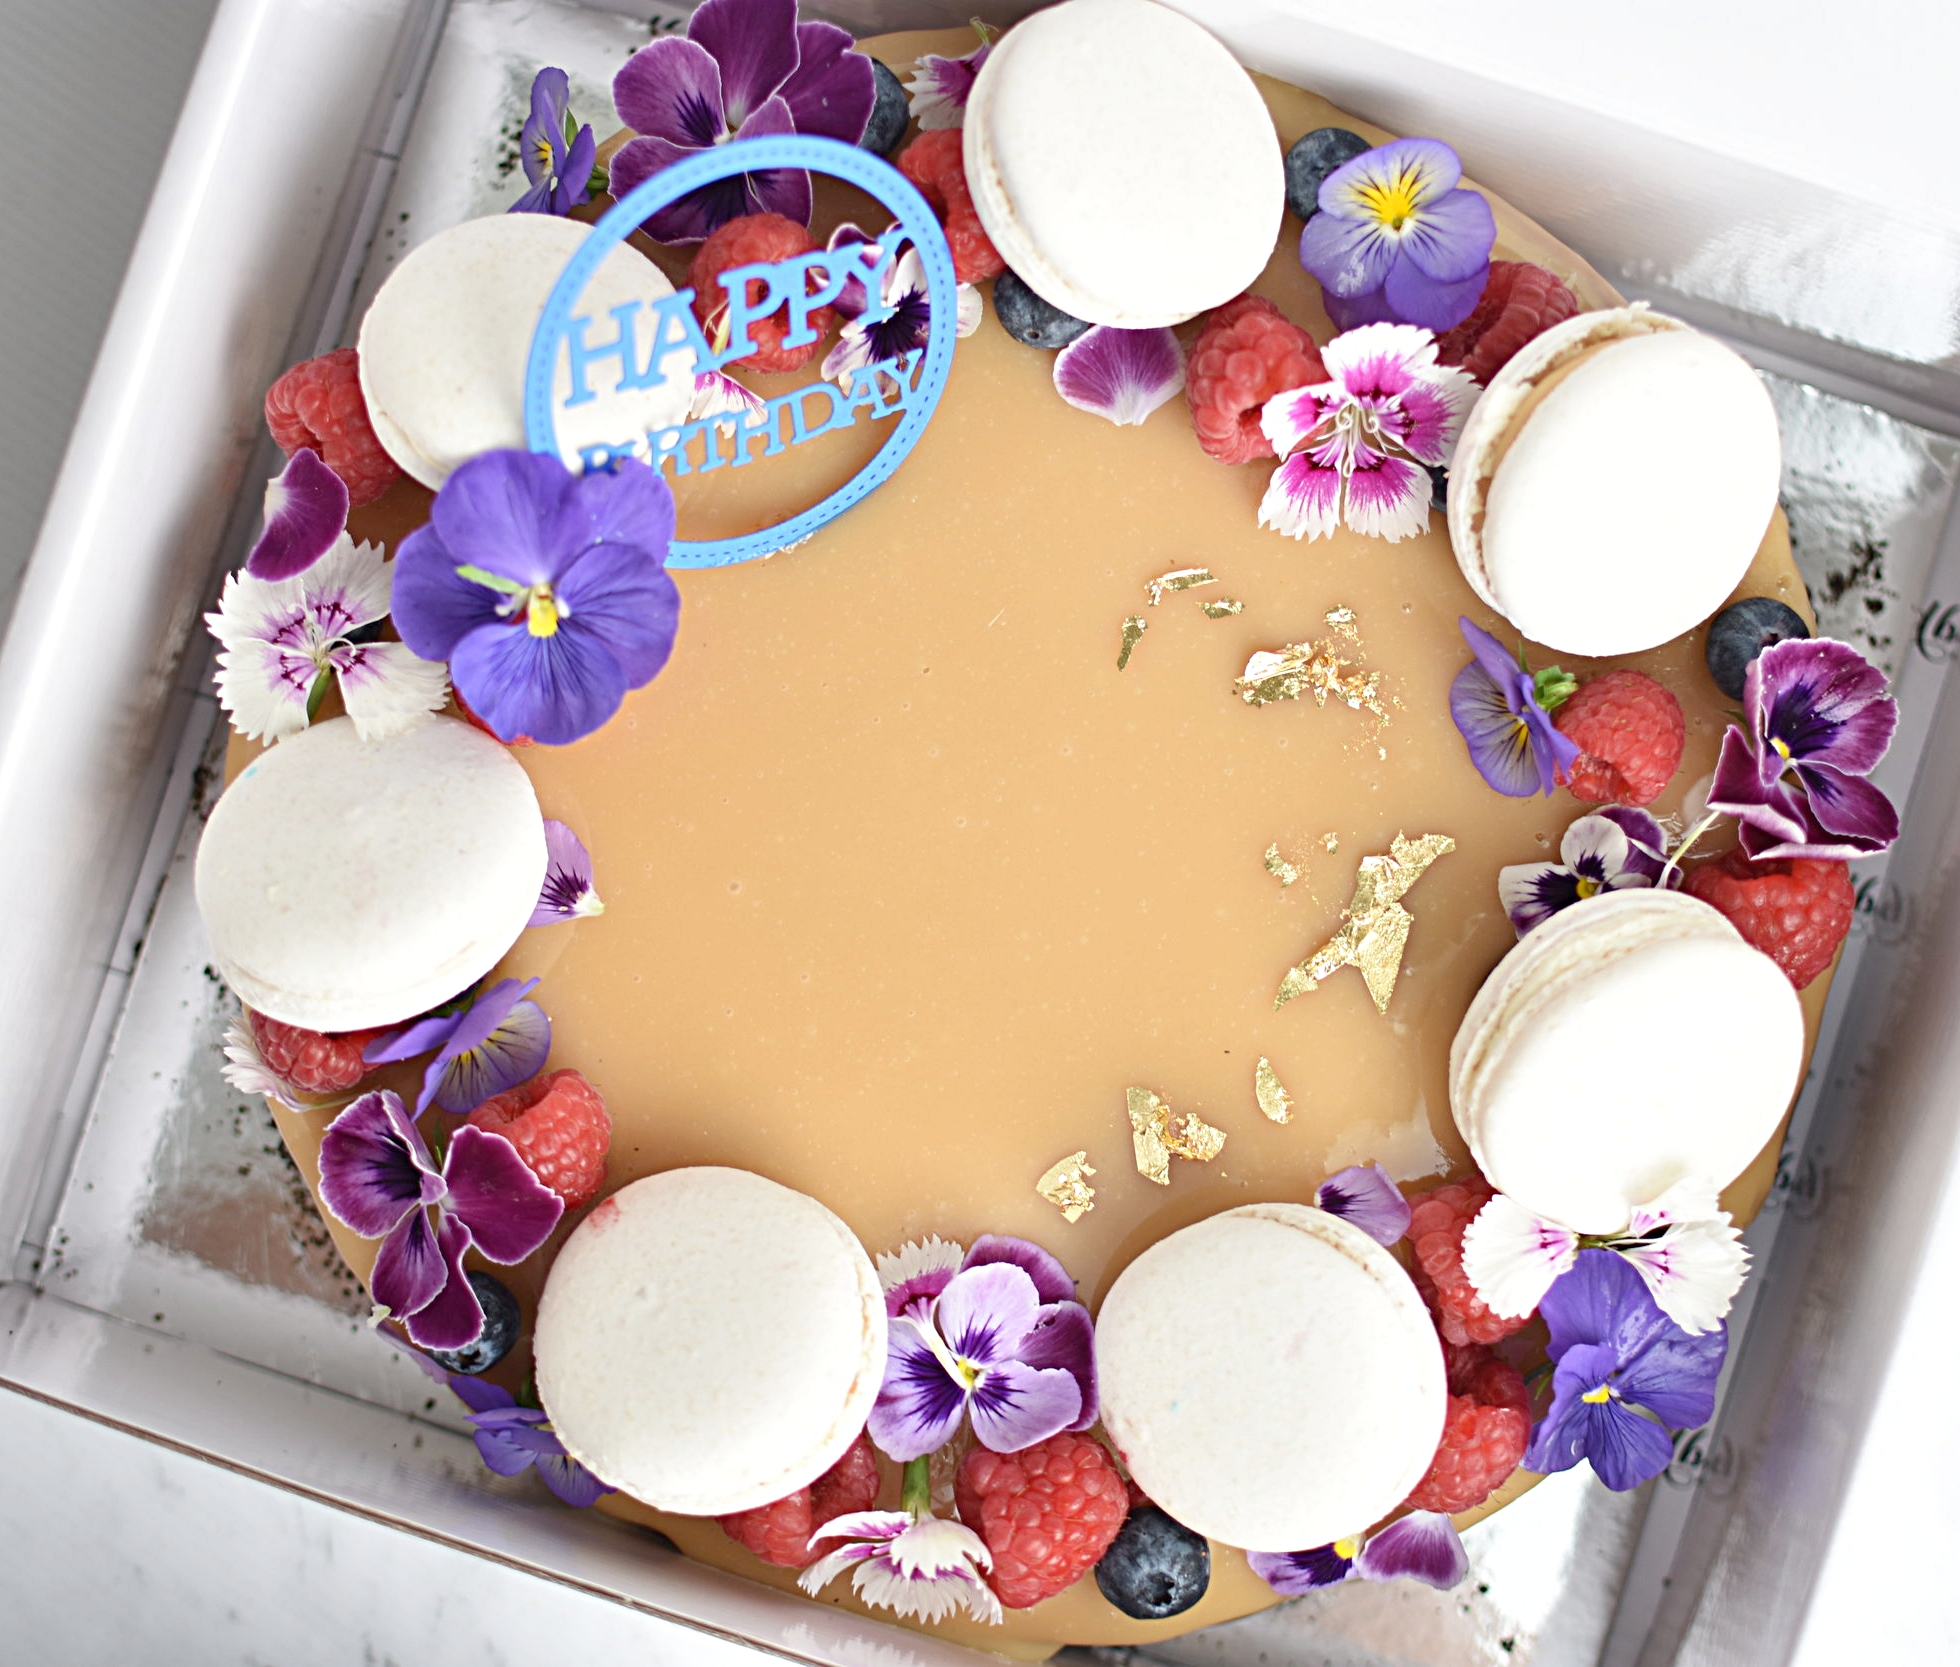 BANOFFEE ENTREMET  Banana Sponge Cake, Caramel Mousse, Milk Chocolate Mousse, Caramel Mirror Glaze, Chocolate and Caramel Macarons, Fresh Berries and Edible Flowers + Gold Leaf.  6' size $49.00 Feed upto 8  8' size $69.00 Feed upto 12